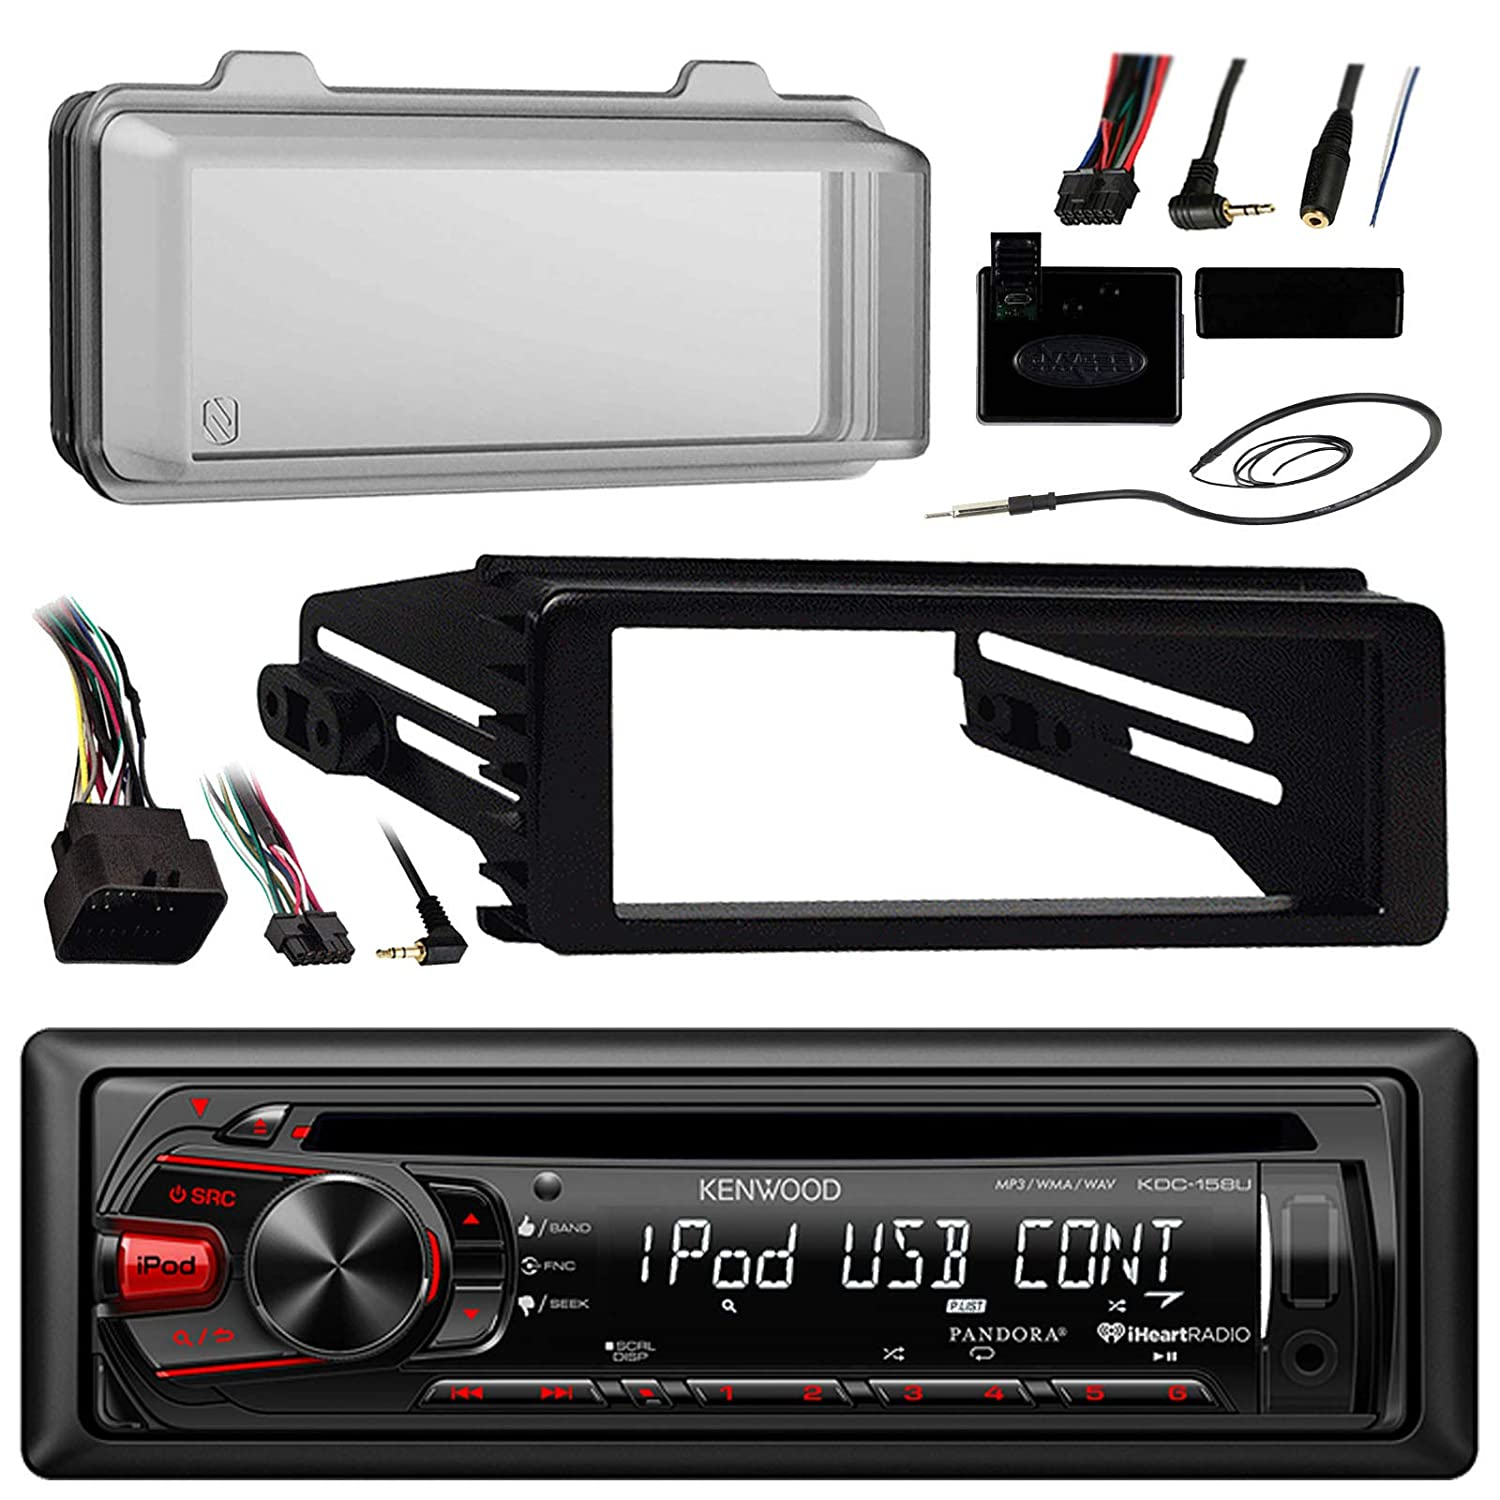 96 2013 Harley Touring Stereo Radio Install Adapter Dash Kenwood Cd Wiring Diagram 1996 Kit Flht Flhx Flhtc Usb Aux W Thumb Control Interface Included